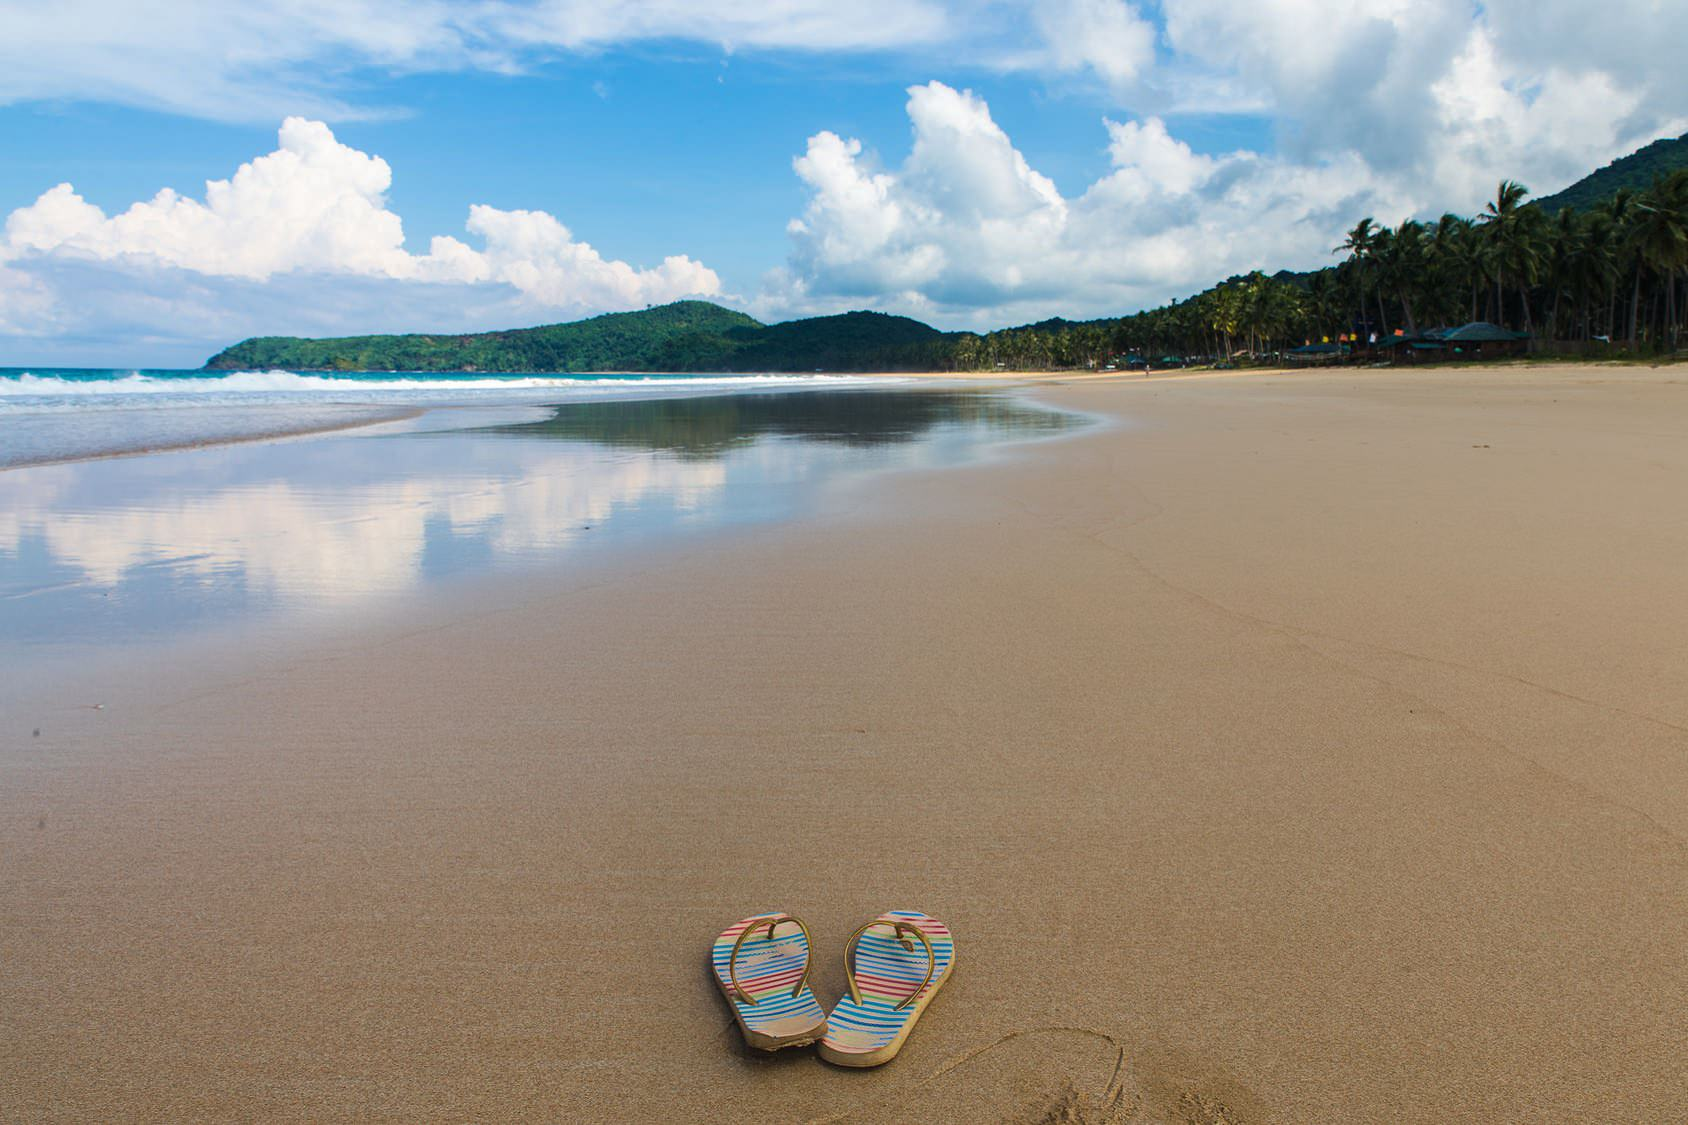 pair of flipflops at Nacpan Beach with cloudy sky and tropical trees on background in El Nido, Palawan province, Philippines